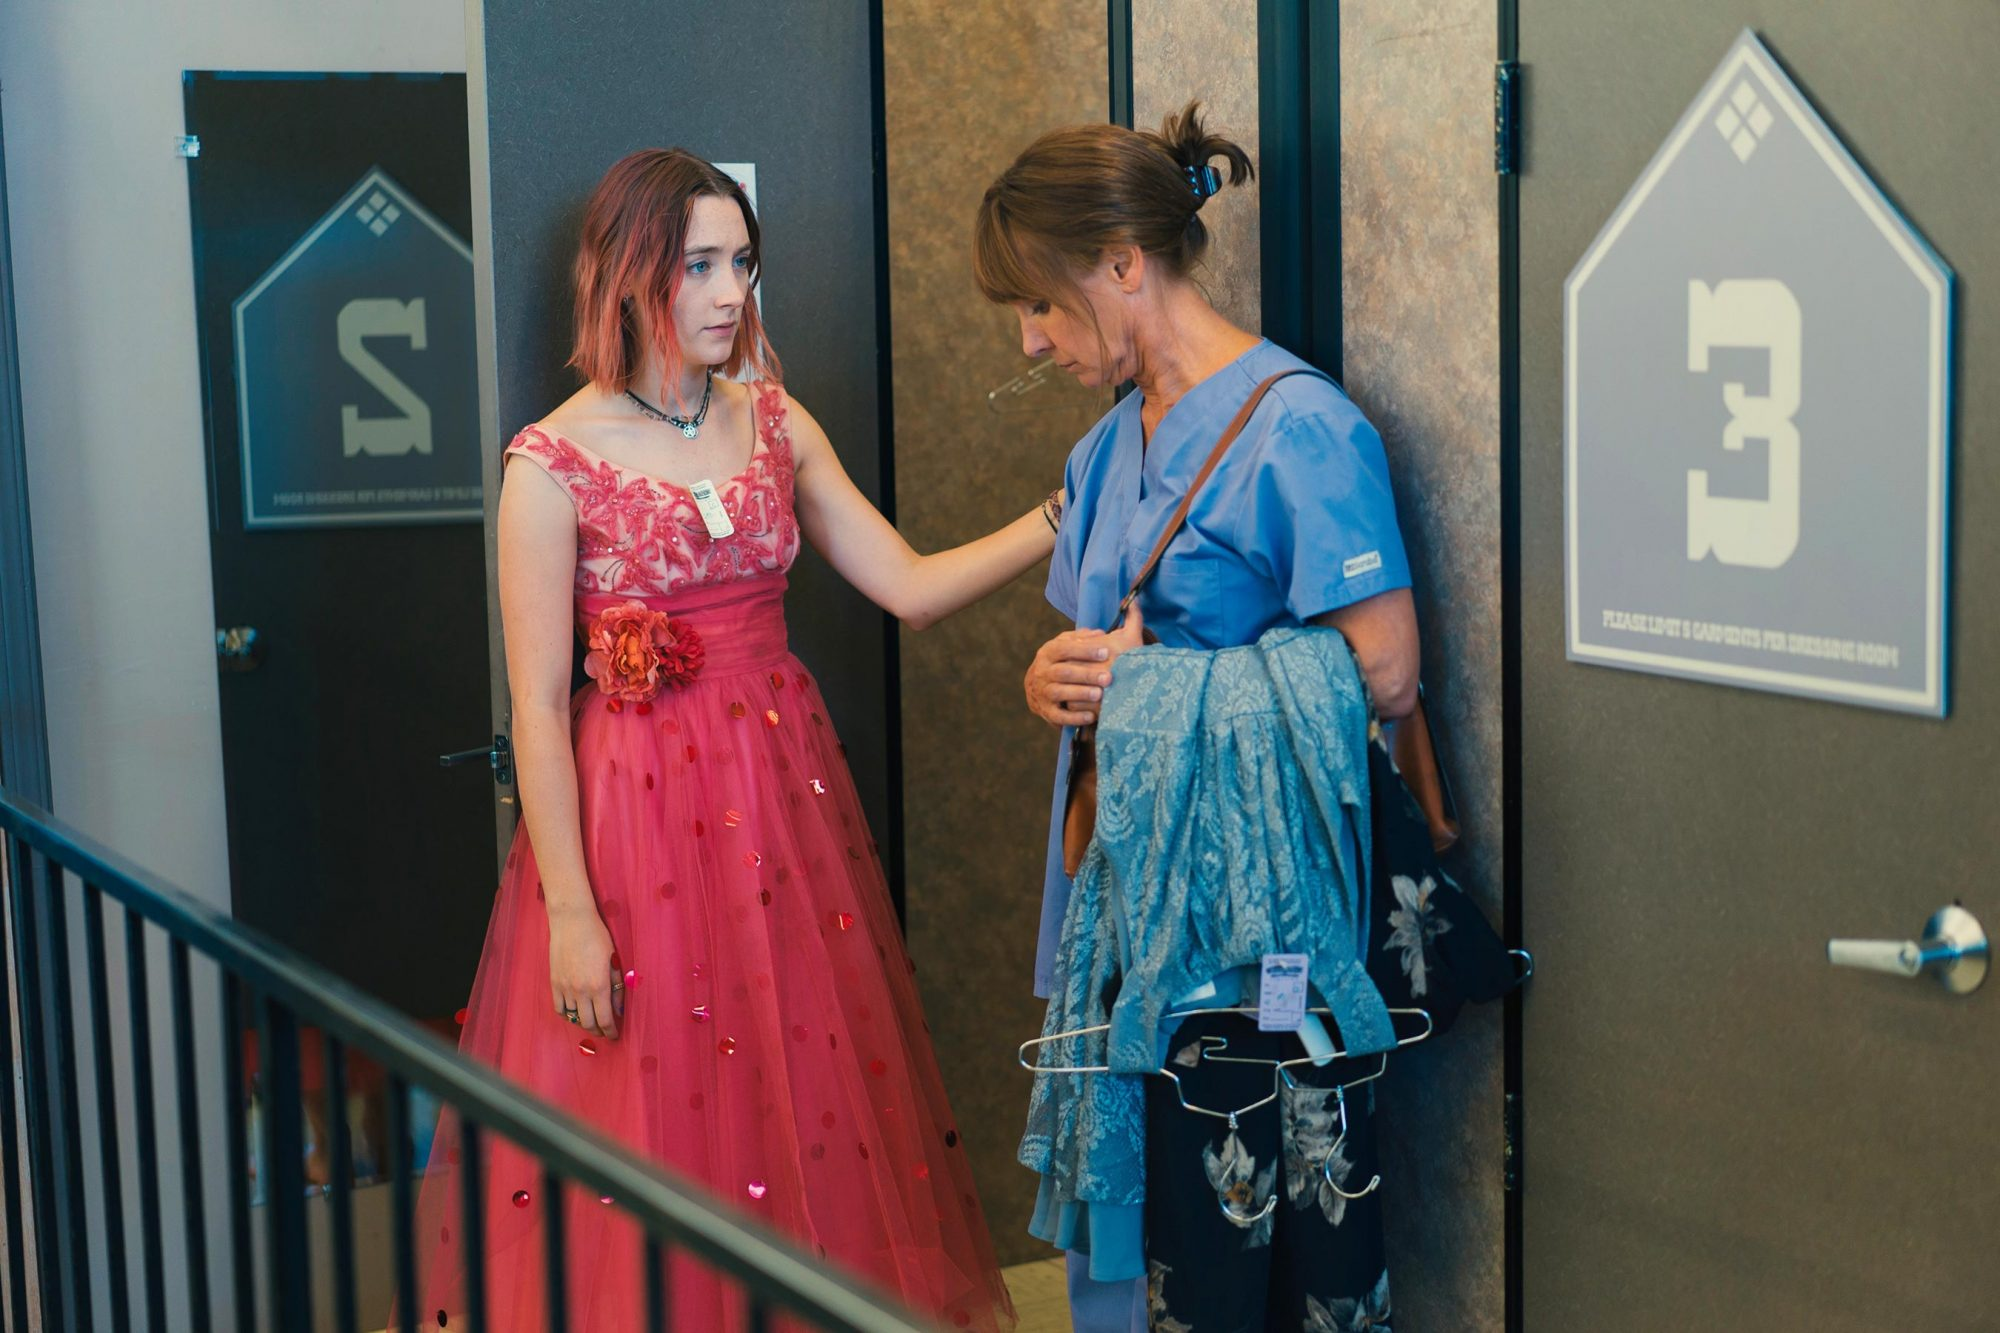 Lady BirdSaoirse Ronan and Laurie Metcalf